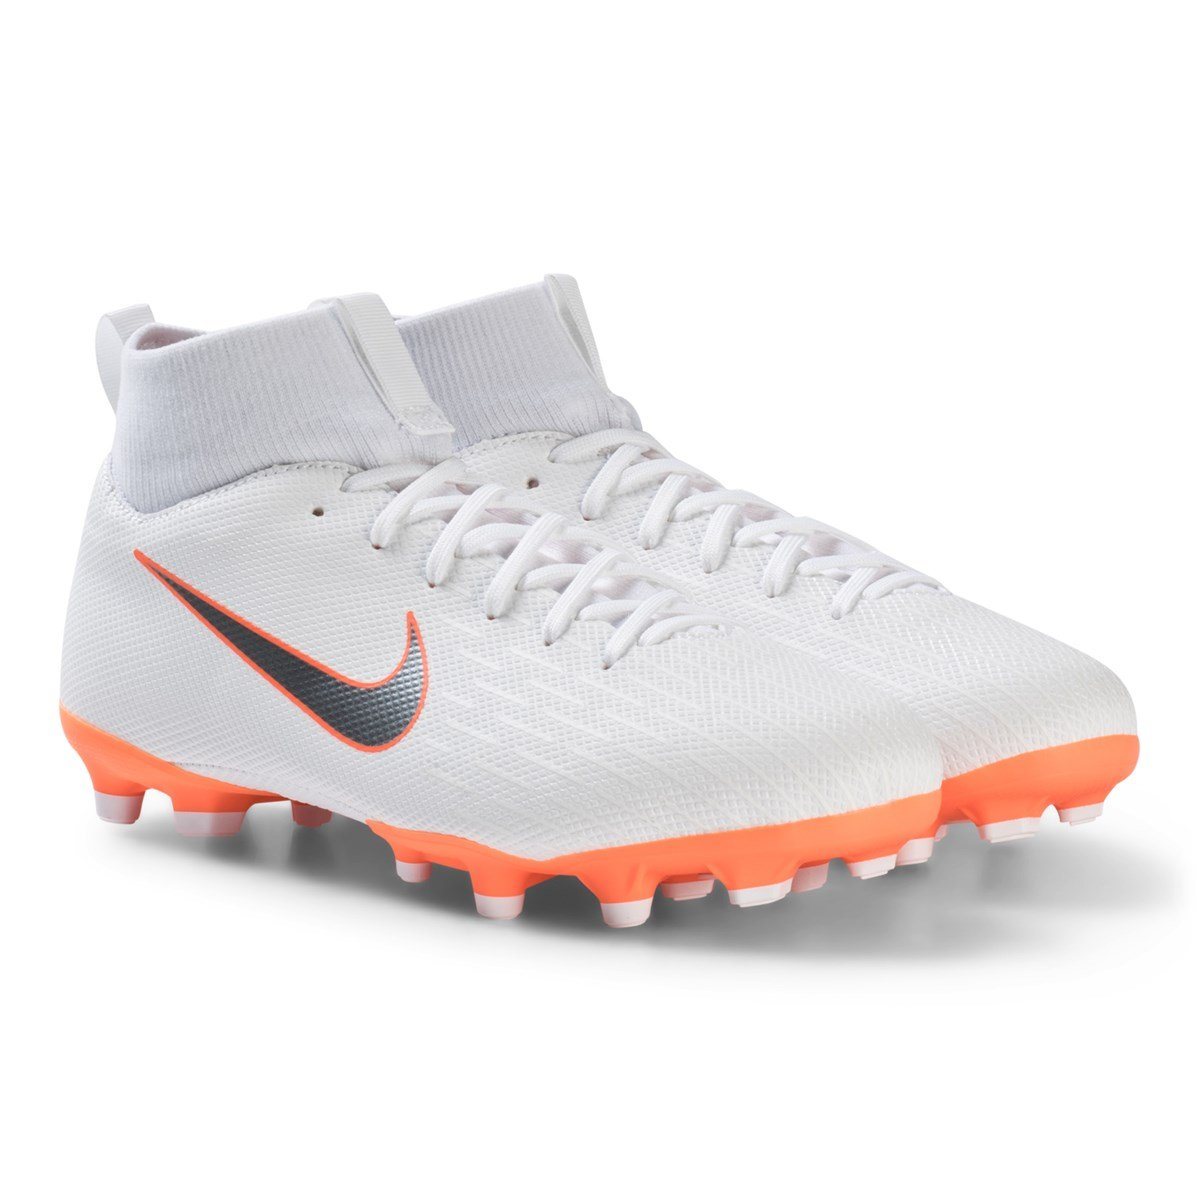 the best attitude 9c4bb 23ae8 nike white superfly 6 academy mg junior football boot